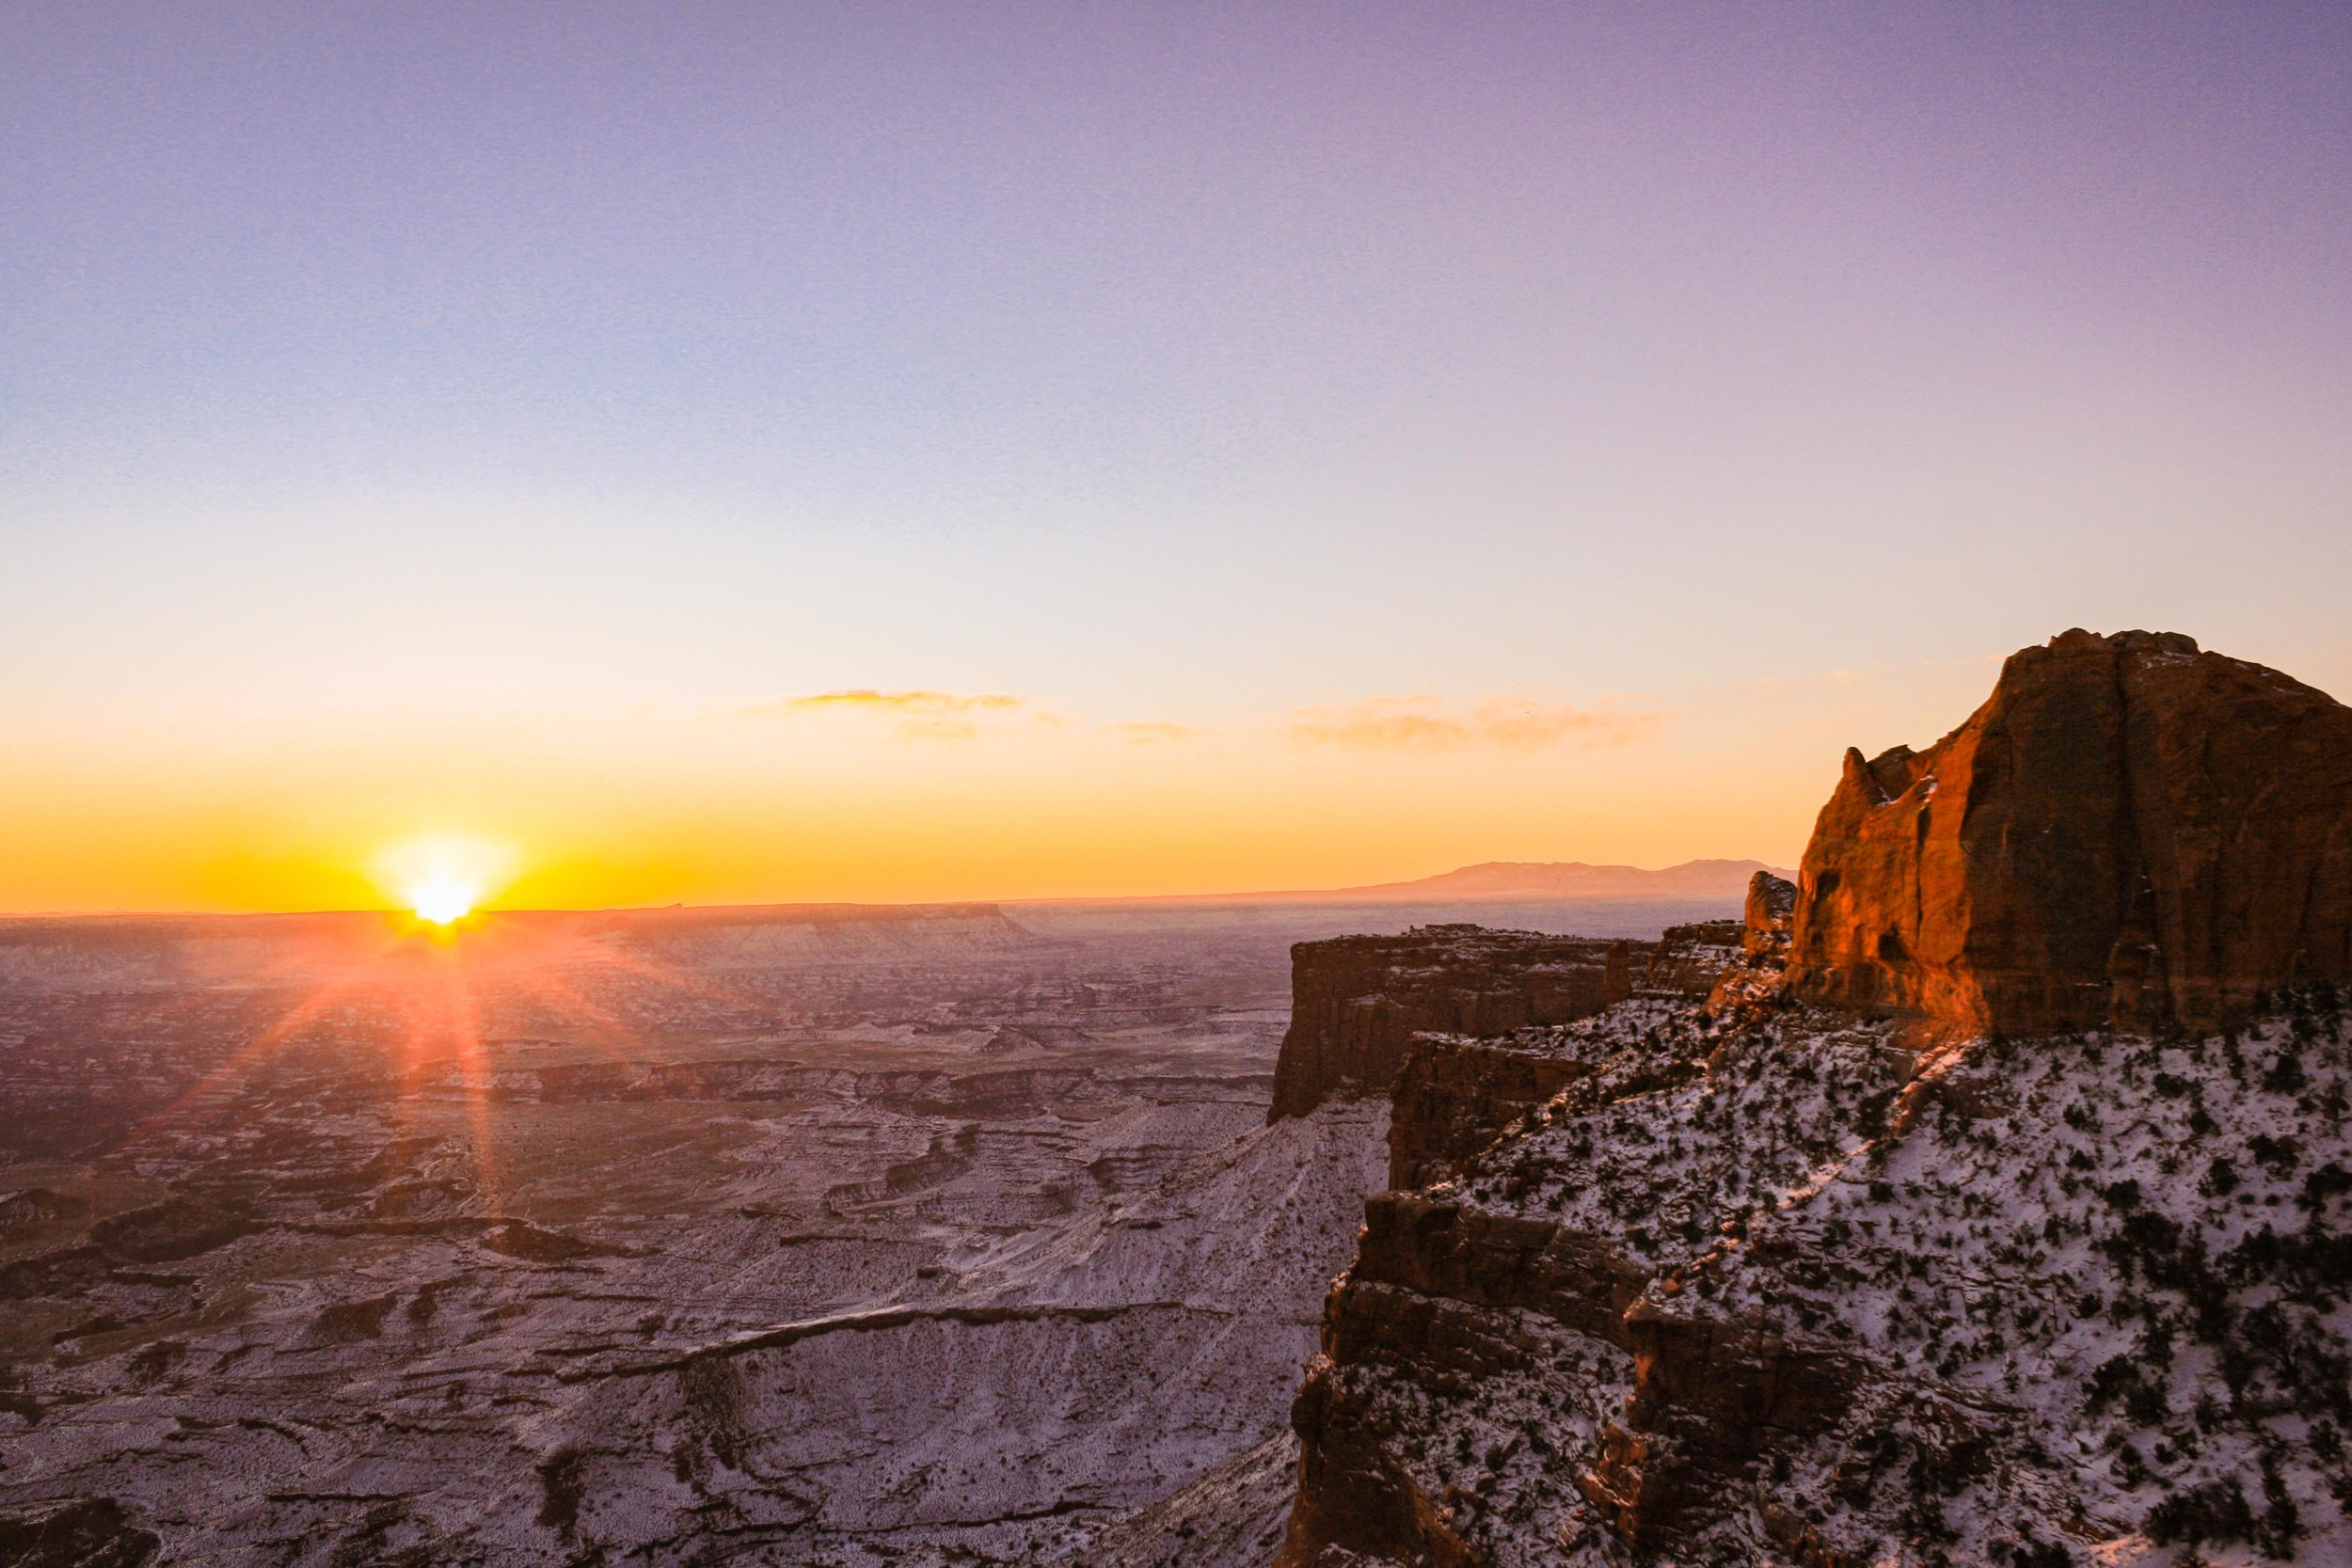 Island in the Sky, Canyonlands National Park. January 2013